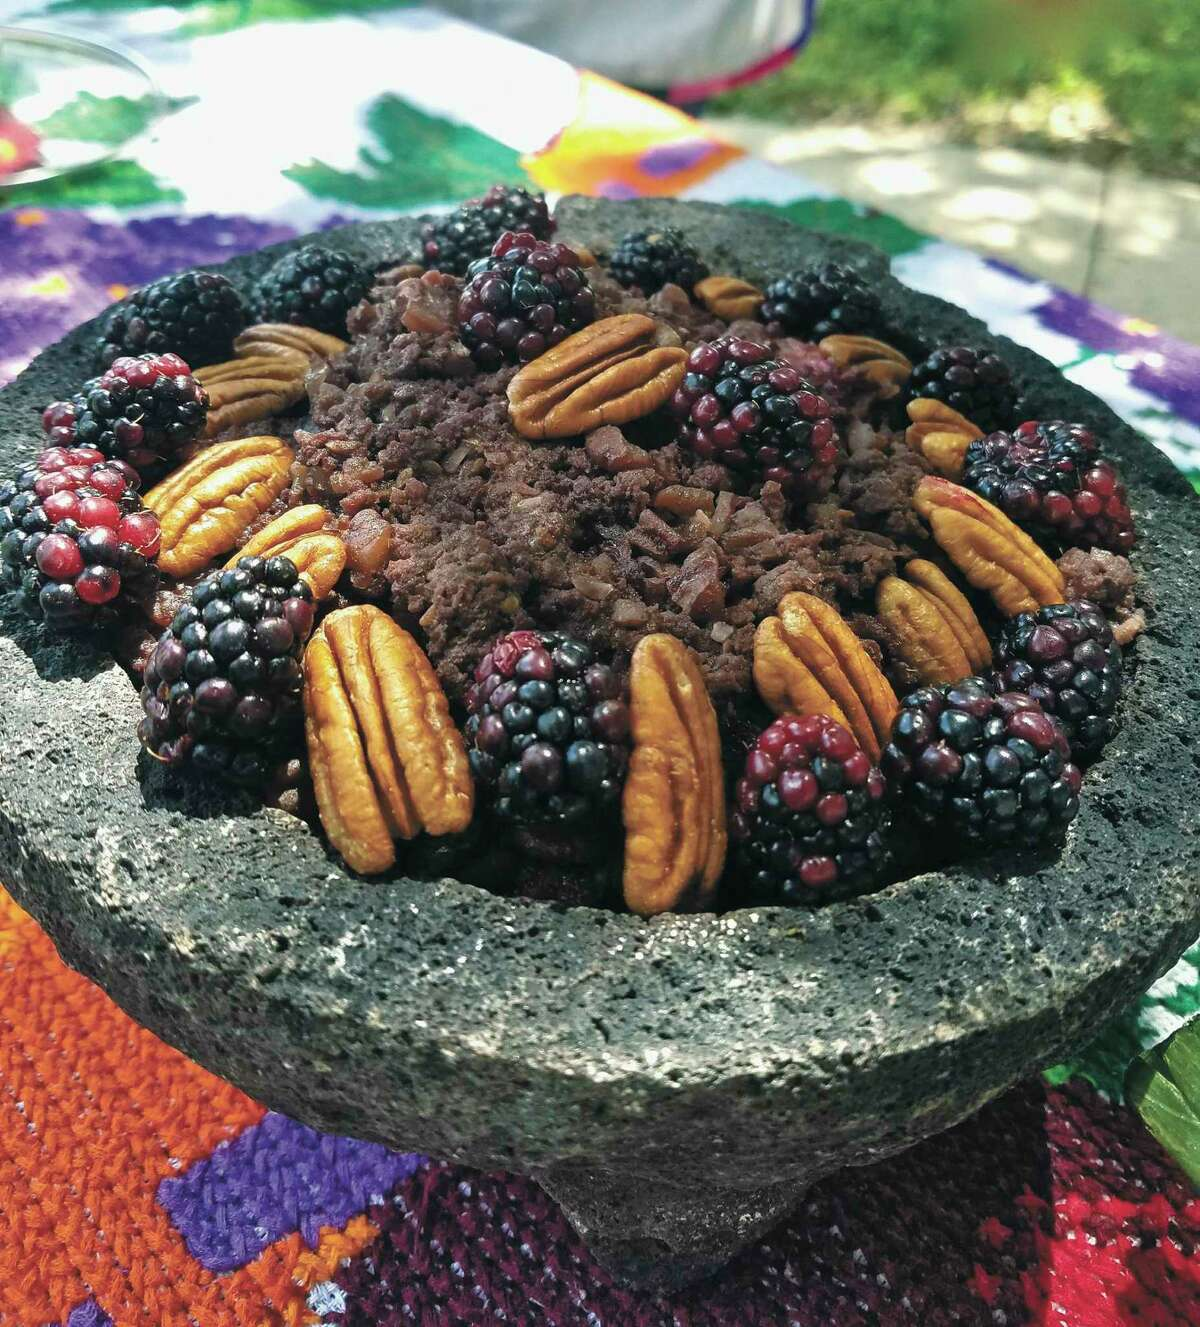 """Adan Medrano's new book, """"Don't Count the Tortillas: The Art of Texas Mexican Cooking,"""" features a recipe by San Antonian Gloria Camarillo Vasquez for a dish featuring bison and blackberries."""